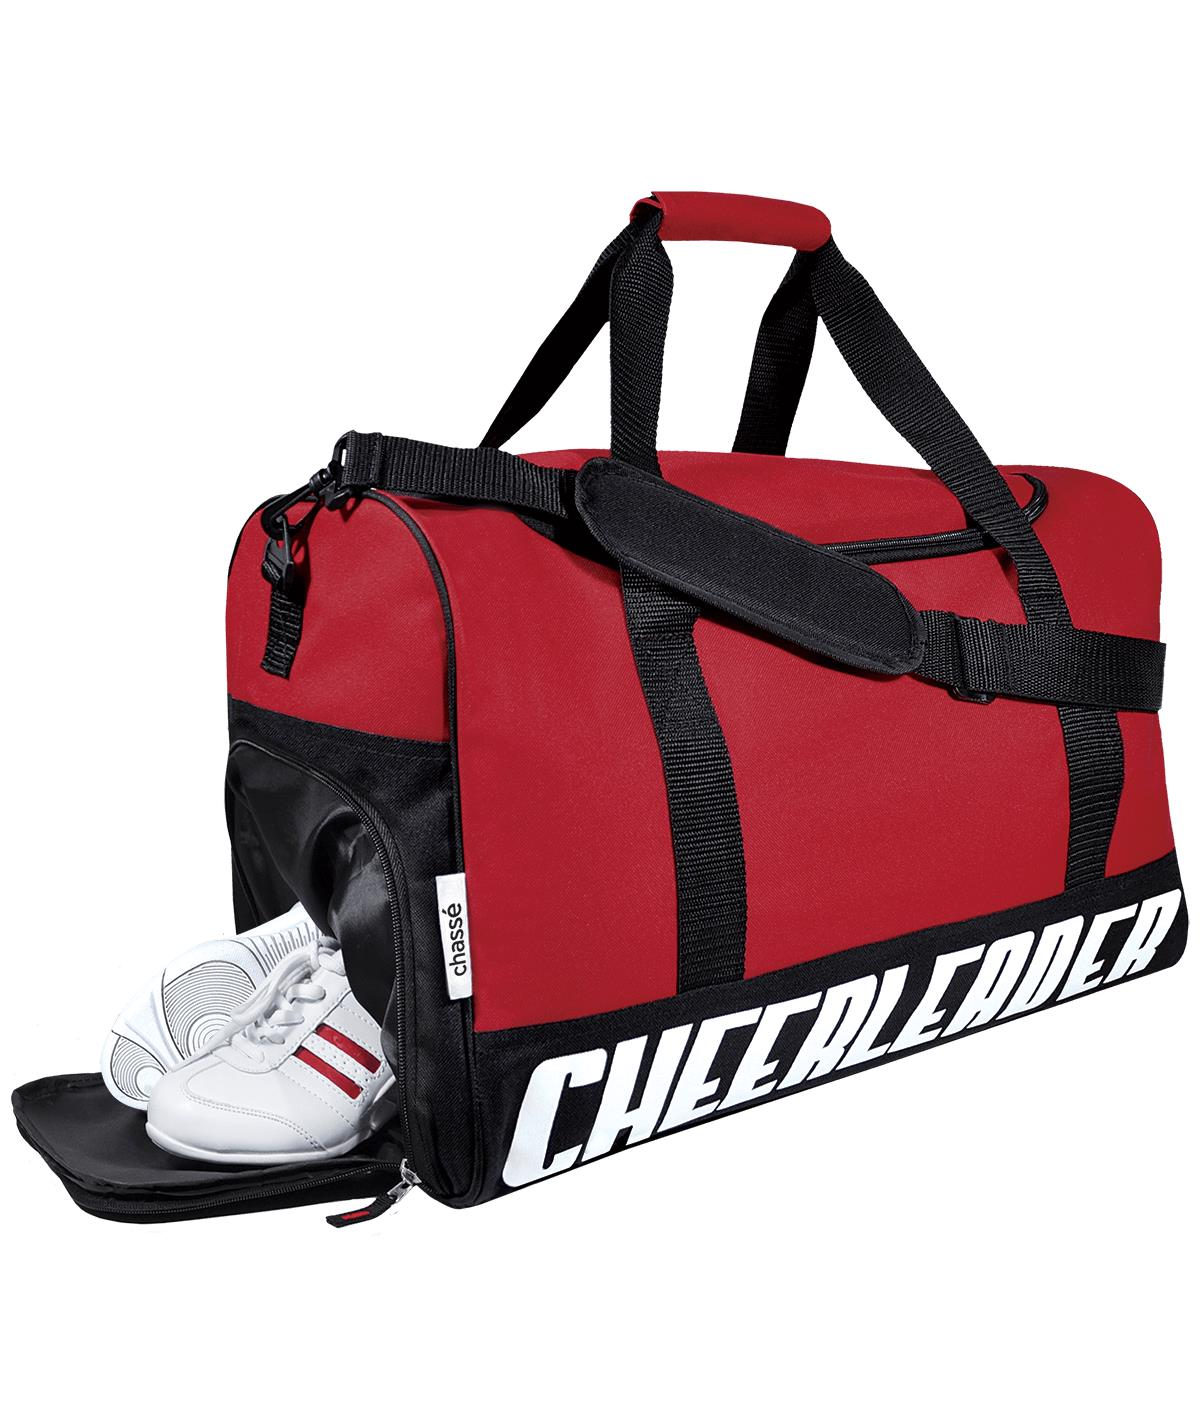 TRAVEL BAG W/CHEERLEADER IMPRINT